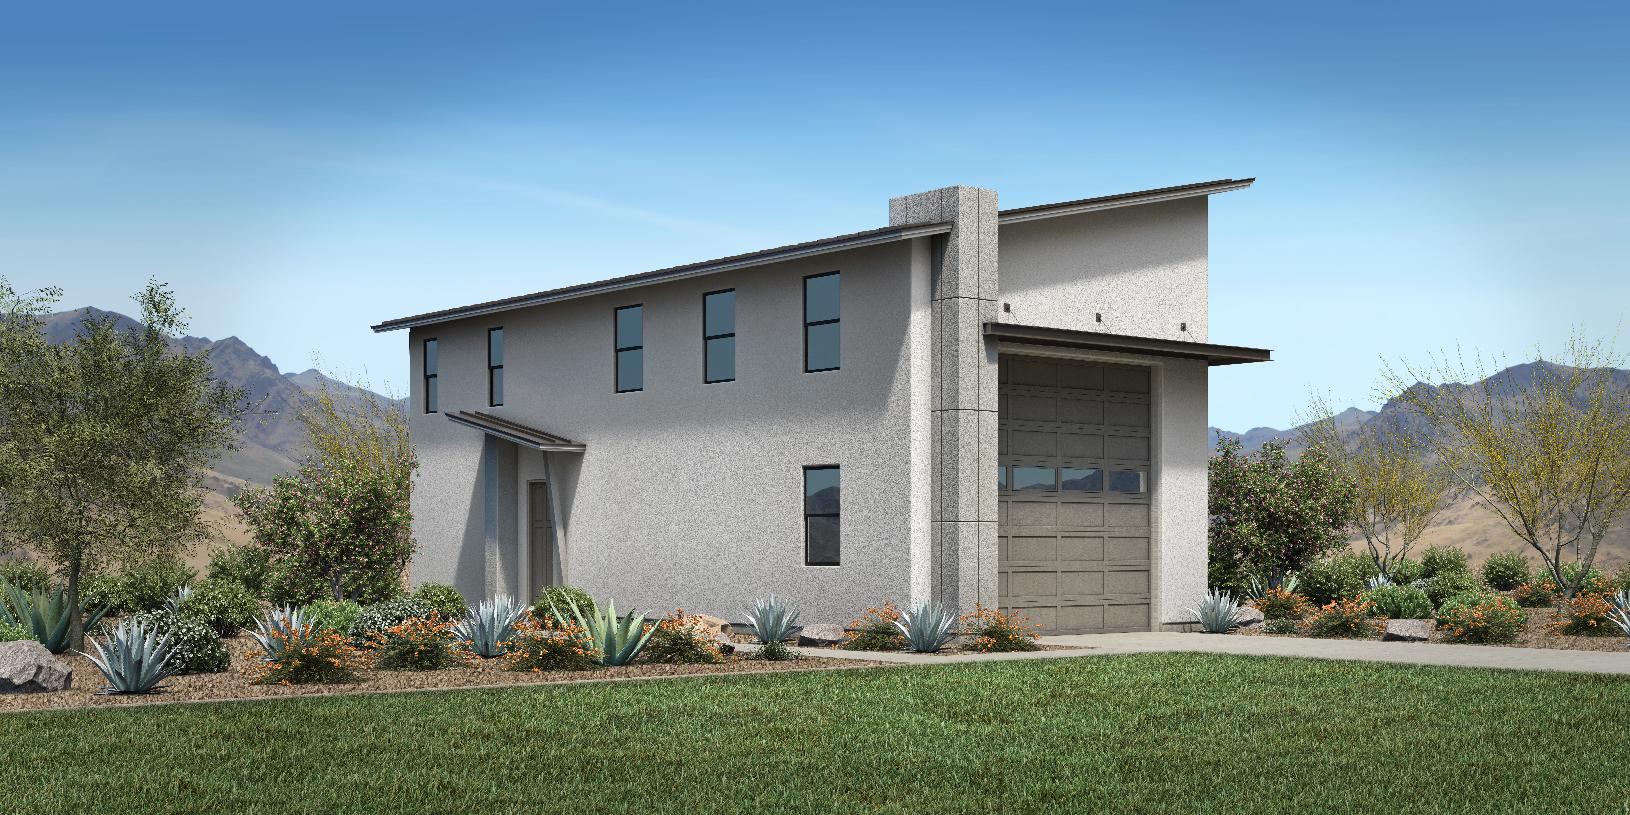 Optional super garages available with Farmhouse, Desert Contemporary and Modern exteriors